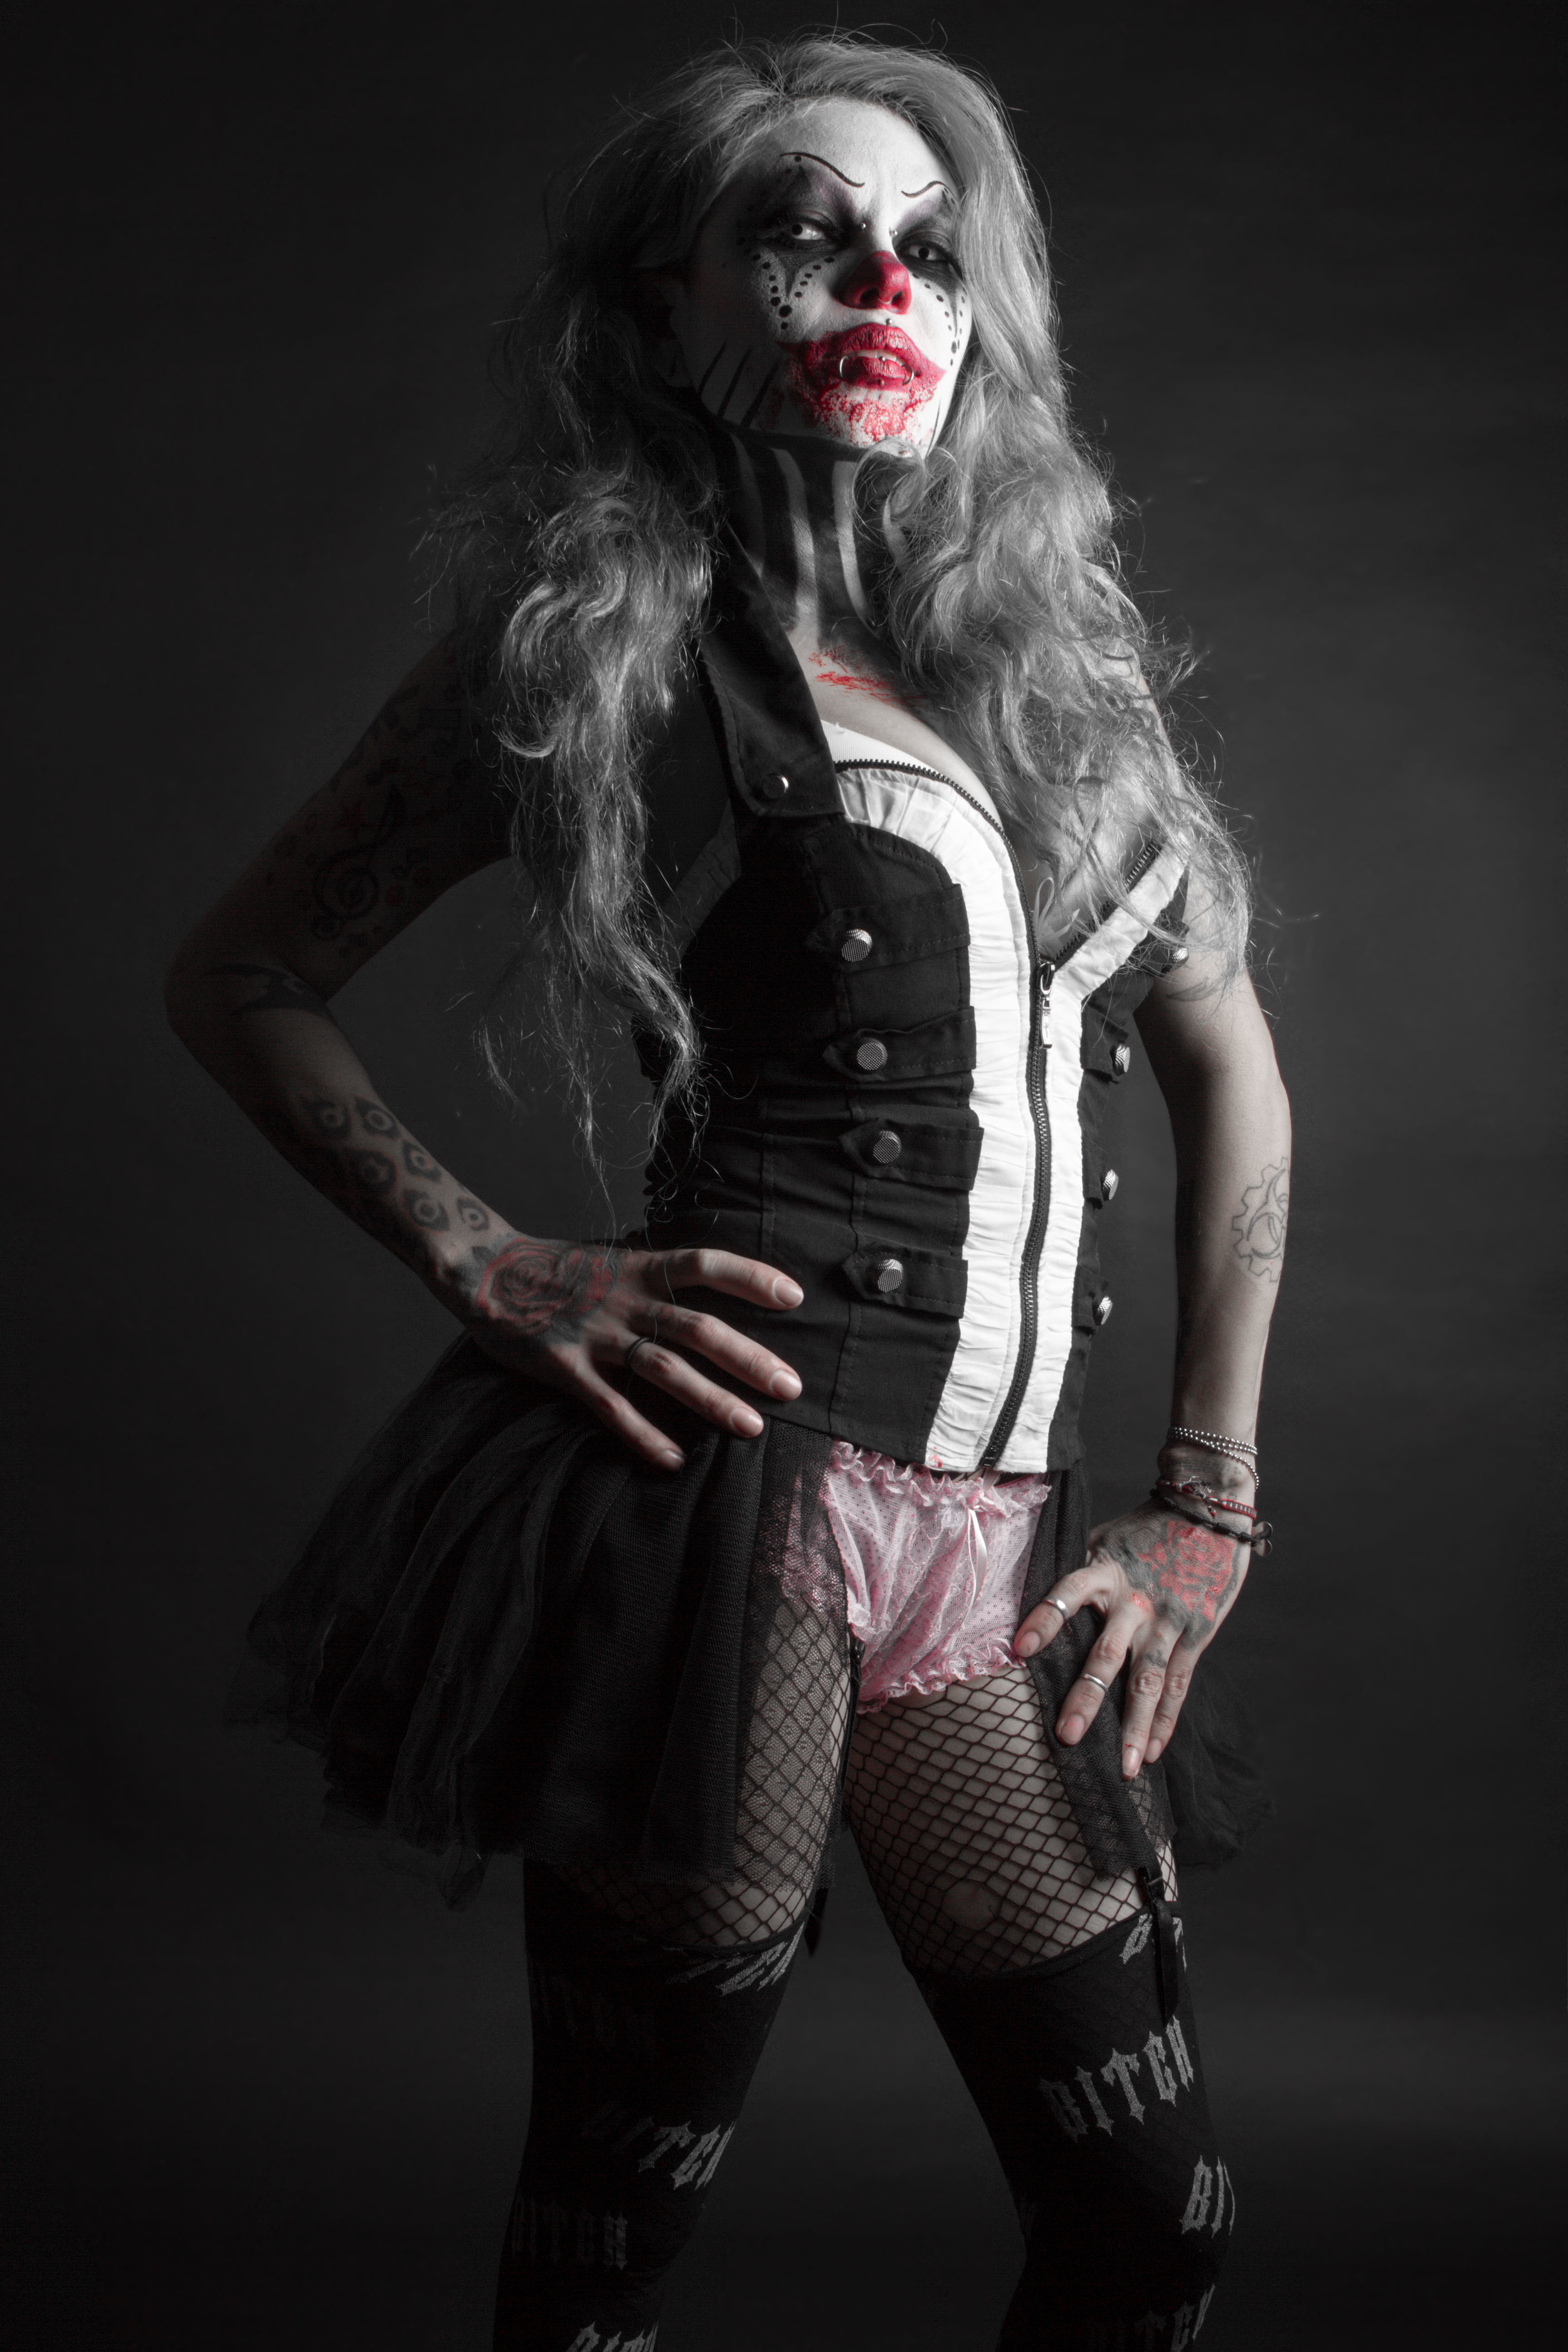 October 27, 2014 - Photo of the Week - Kyle Rea Photography - Kitty Clown.jpg